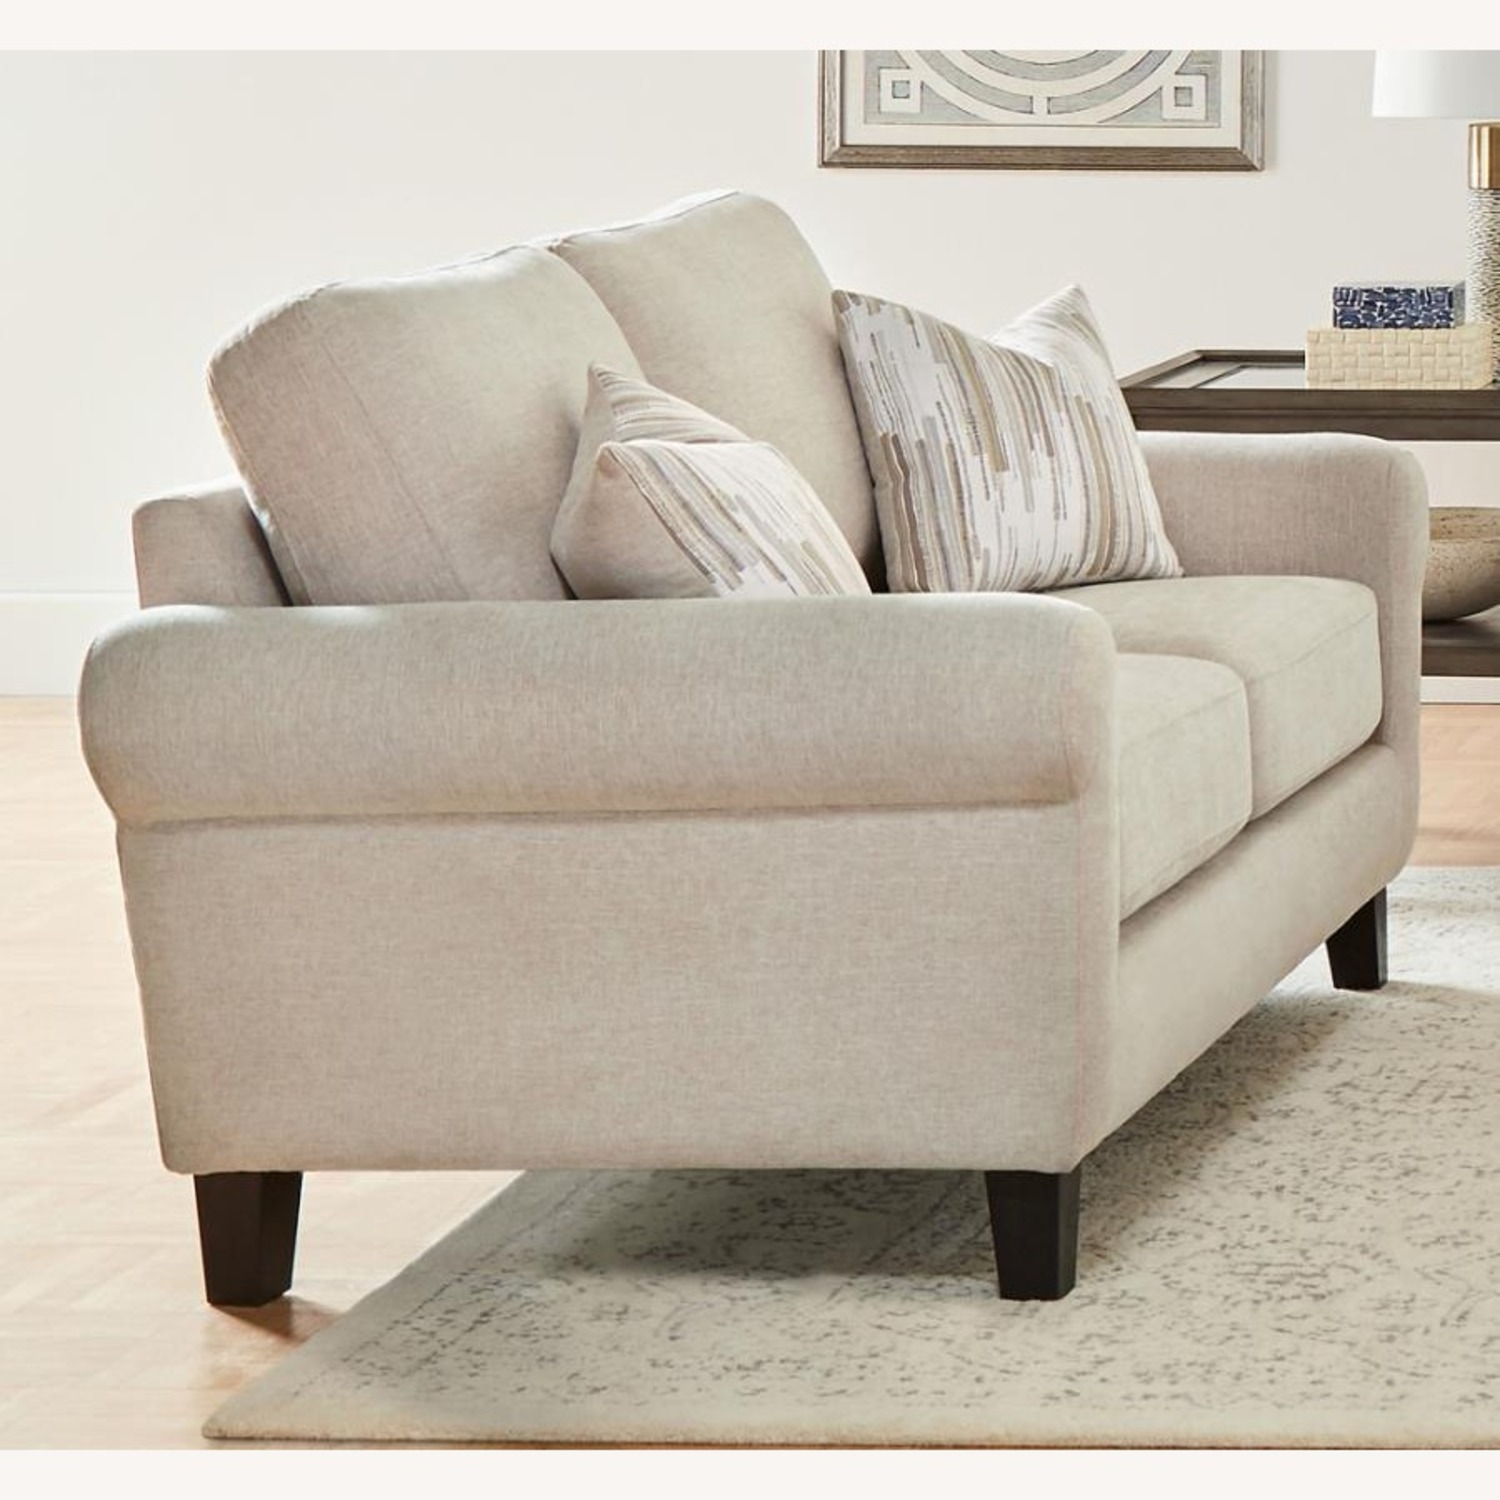 Loveseat In Oatmeal Chenille Upholstery - image-1